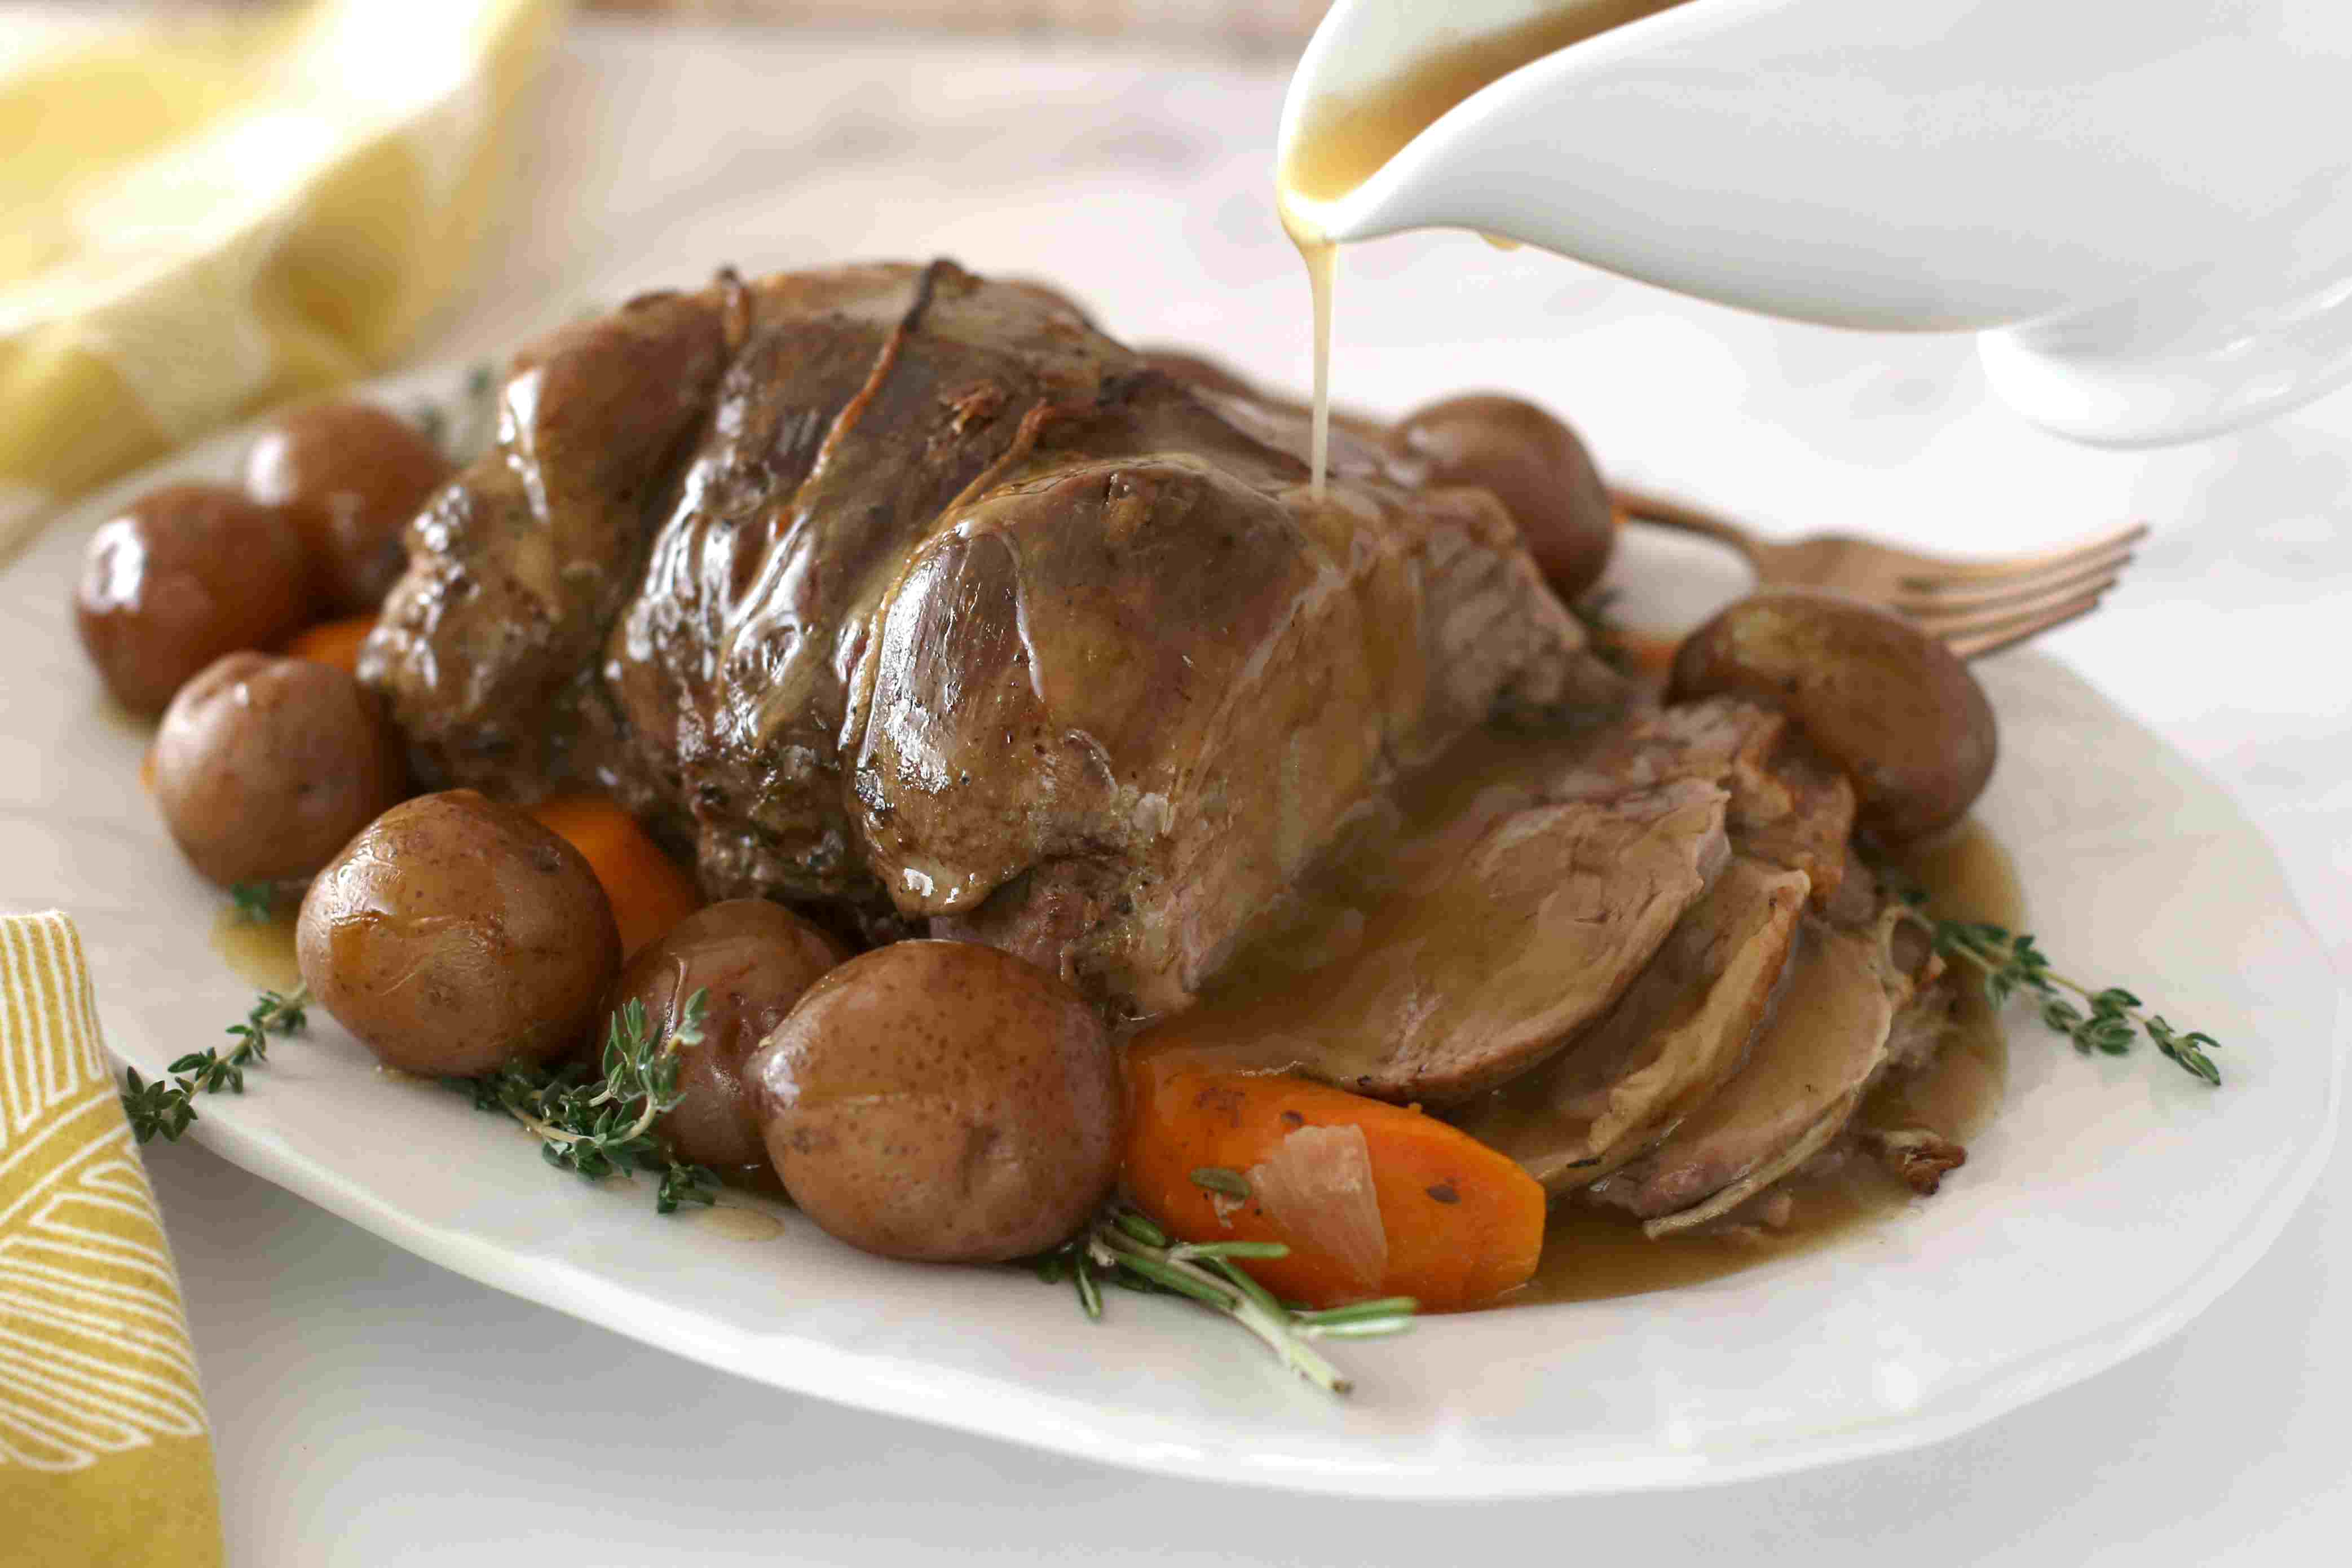 Gravy poured over the Ieg of lamb